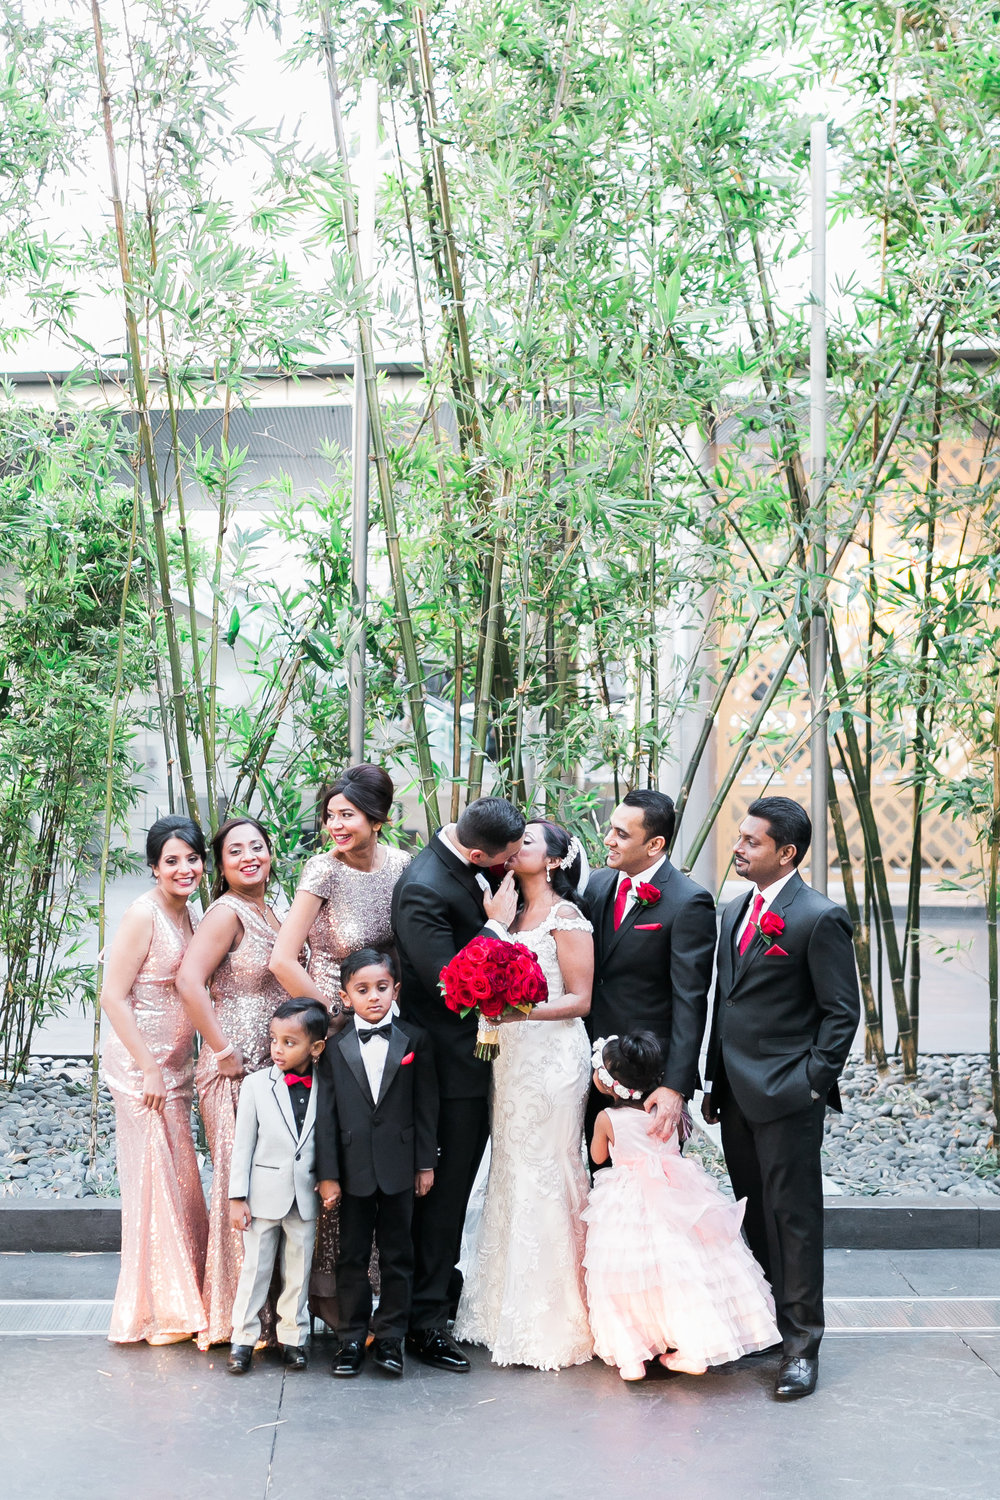 Stolen Kisses with the bridal party in front of the Mandarin Oriental Las Vegas. The flower girl hid her eyes!     Las Vegas Wedding Planner Andrea Eppolito.  www.andreaeppolitoevents.com  Photo by J.Anne Photography.  www.j-annephotography.com  As seen on The  Wedding Editorialist  Wedding Blog.